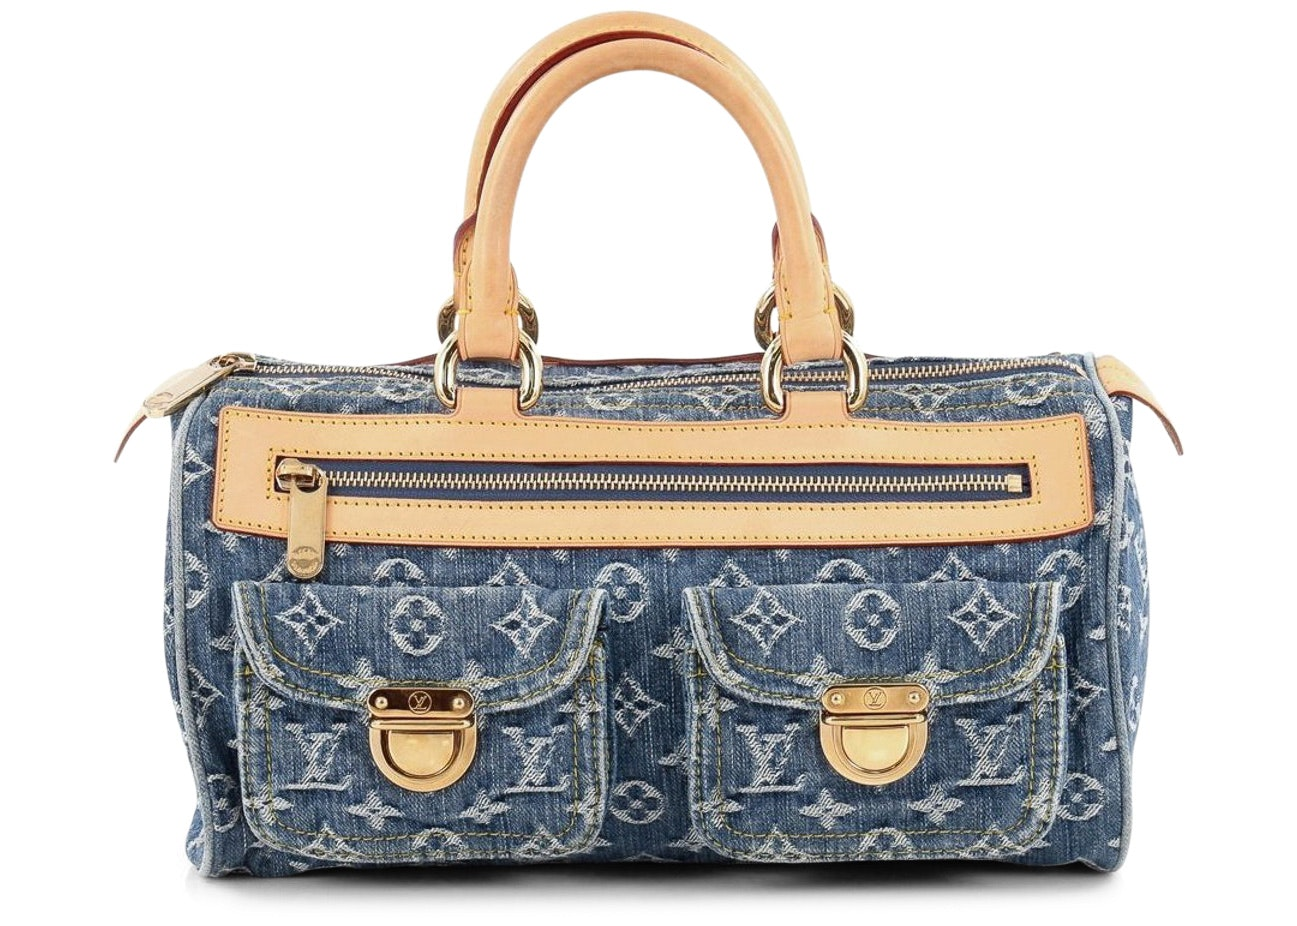 Louis Vuitton Speedy Neo Monogram Blue